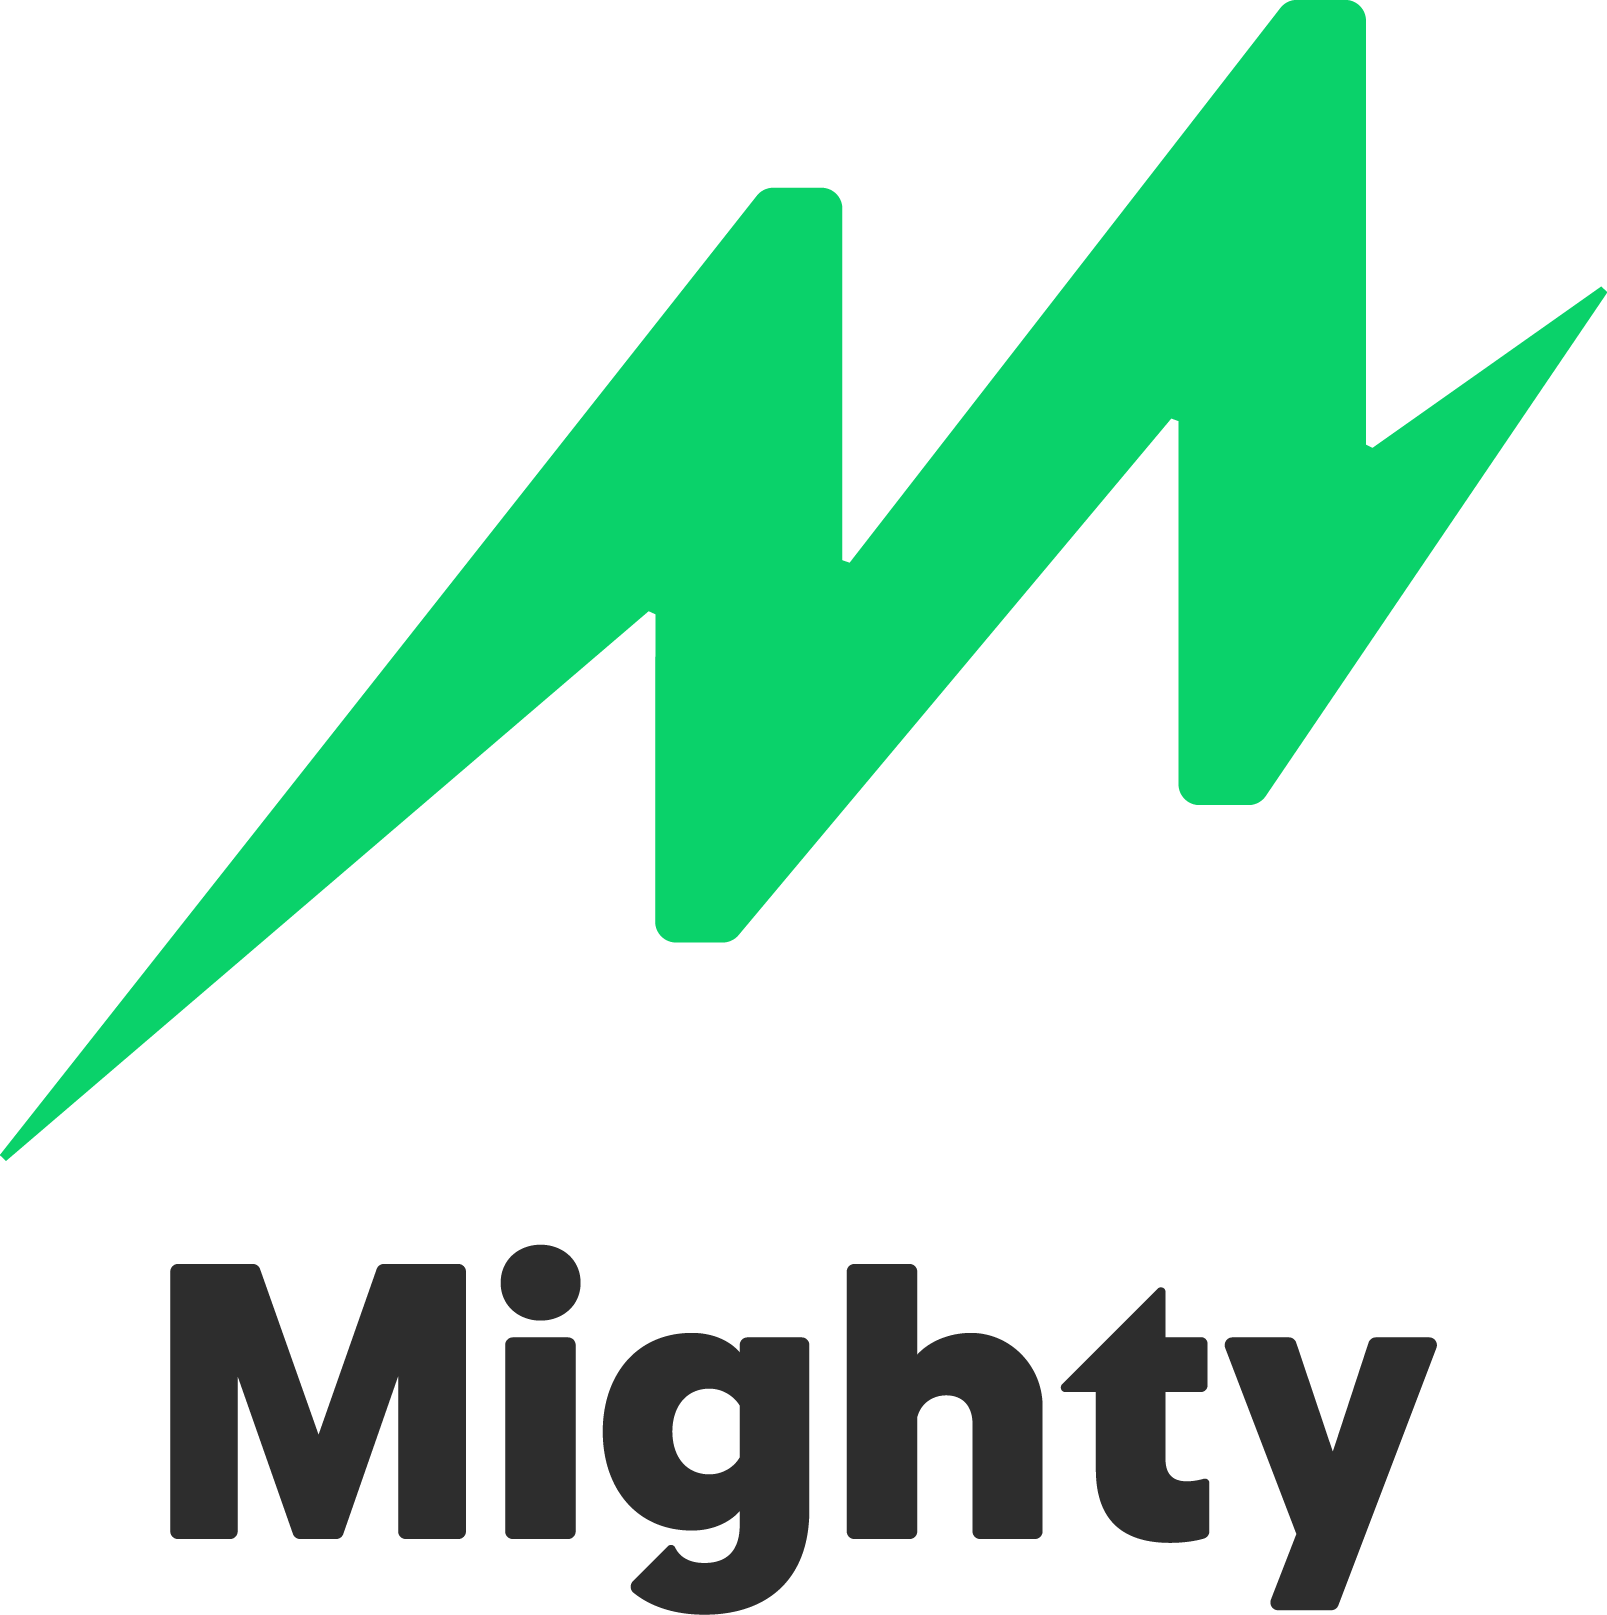 Mighty logo